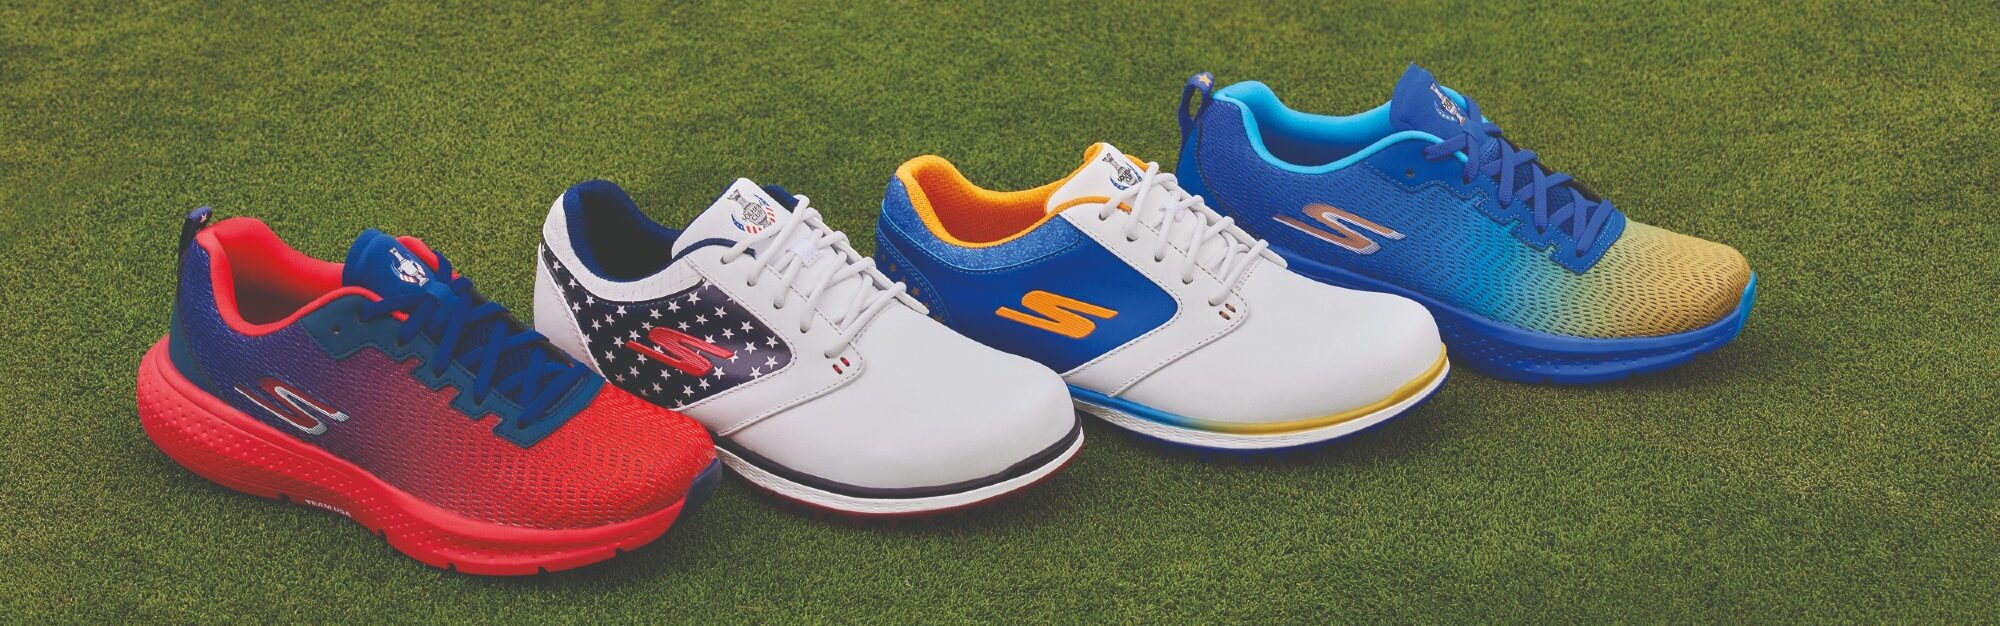 WIN! A pair of limited-edition Skechers golf shoes – as worn by the European Solheim Cup team